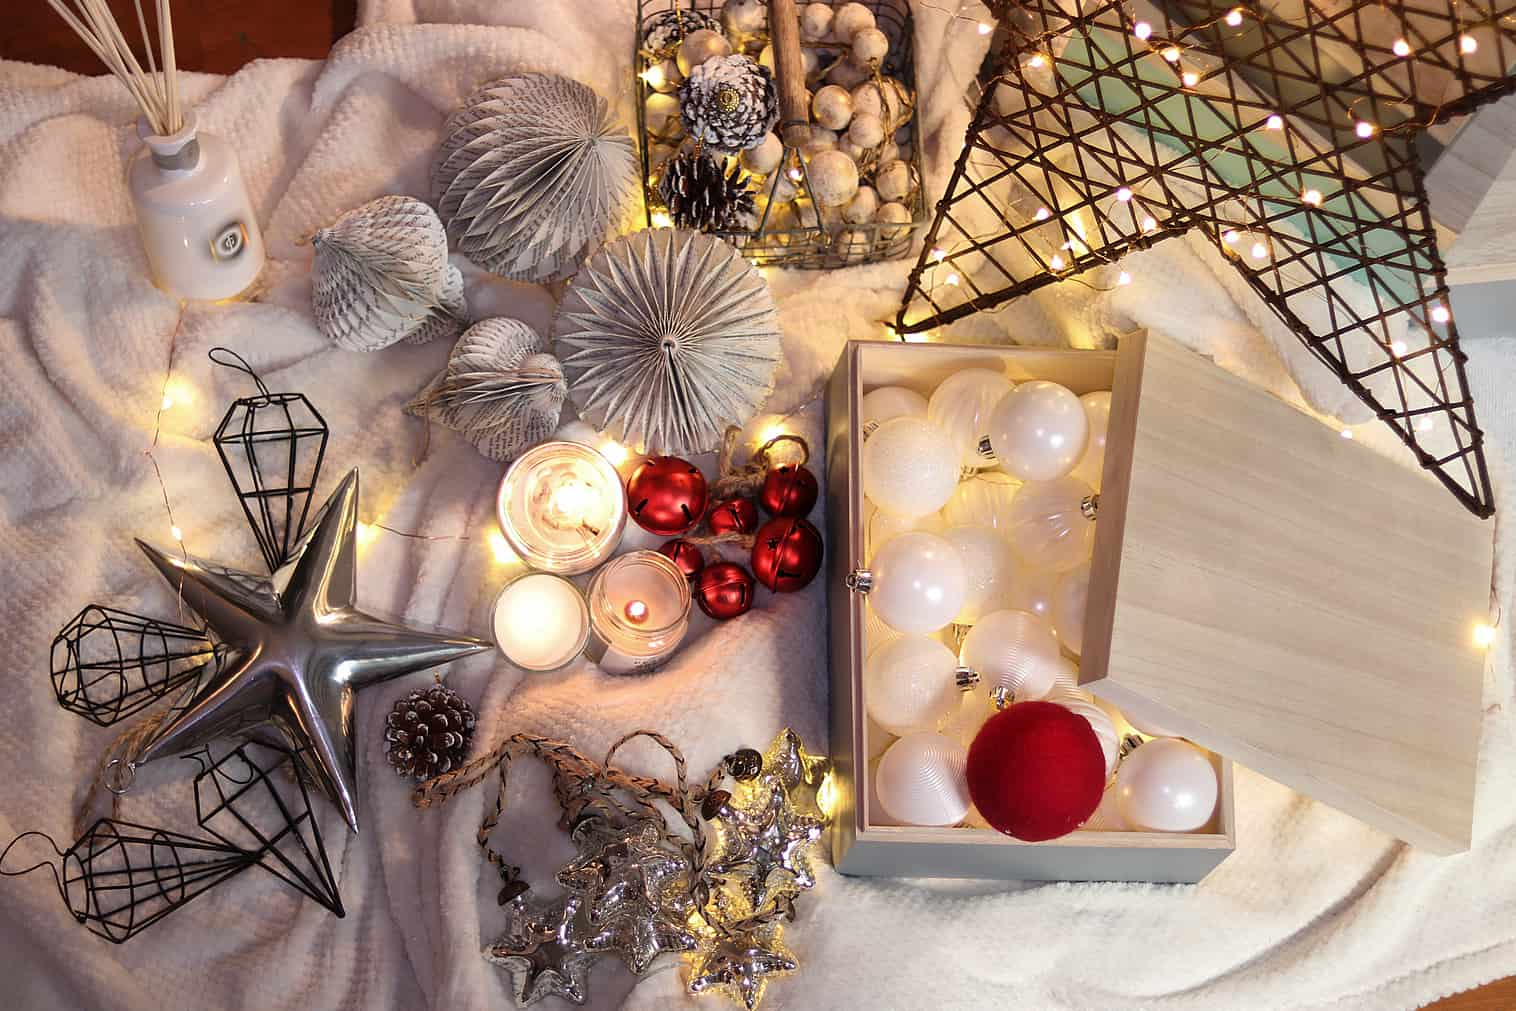 magical christmas decorations list - Christmas Decorations List